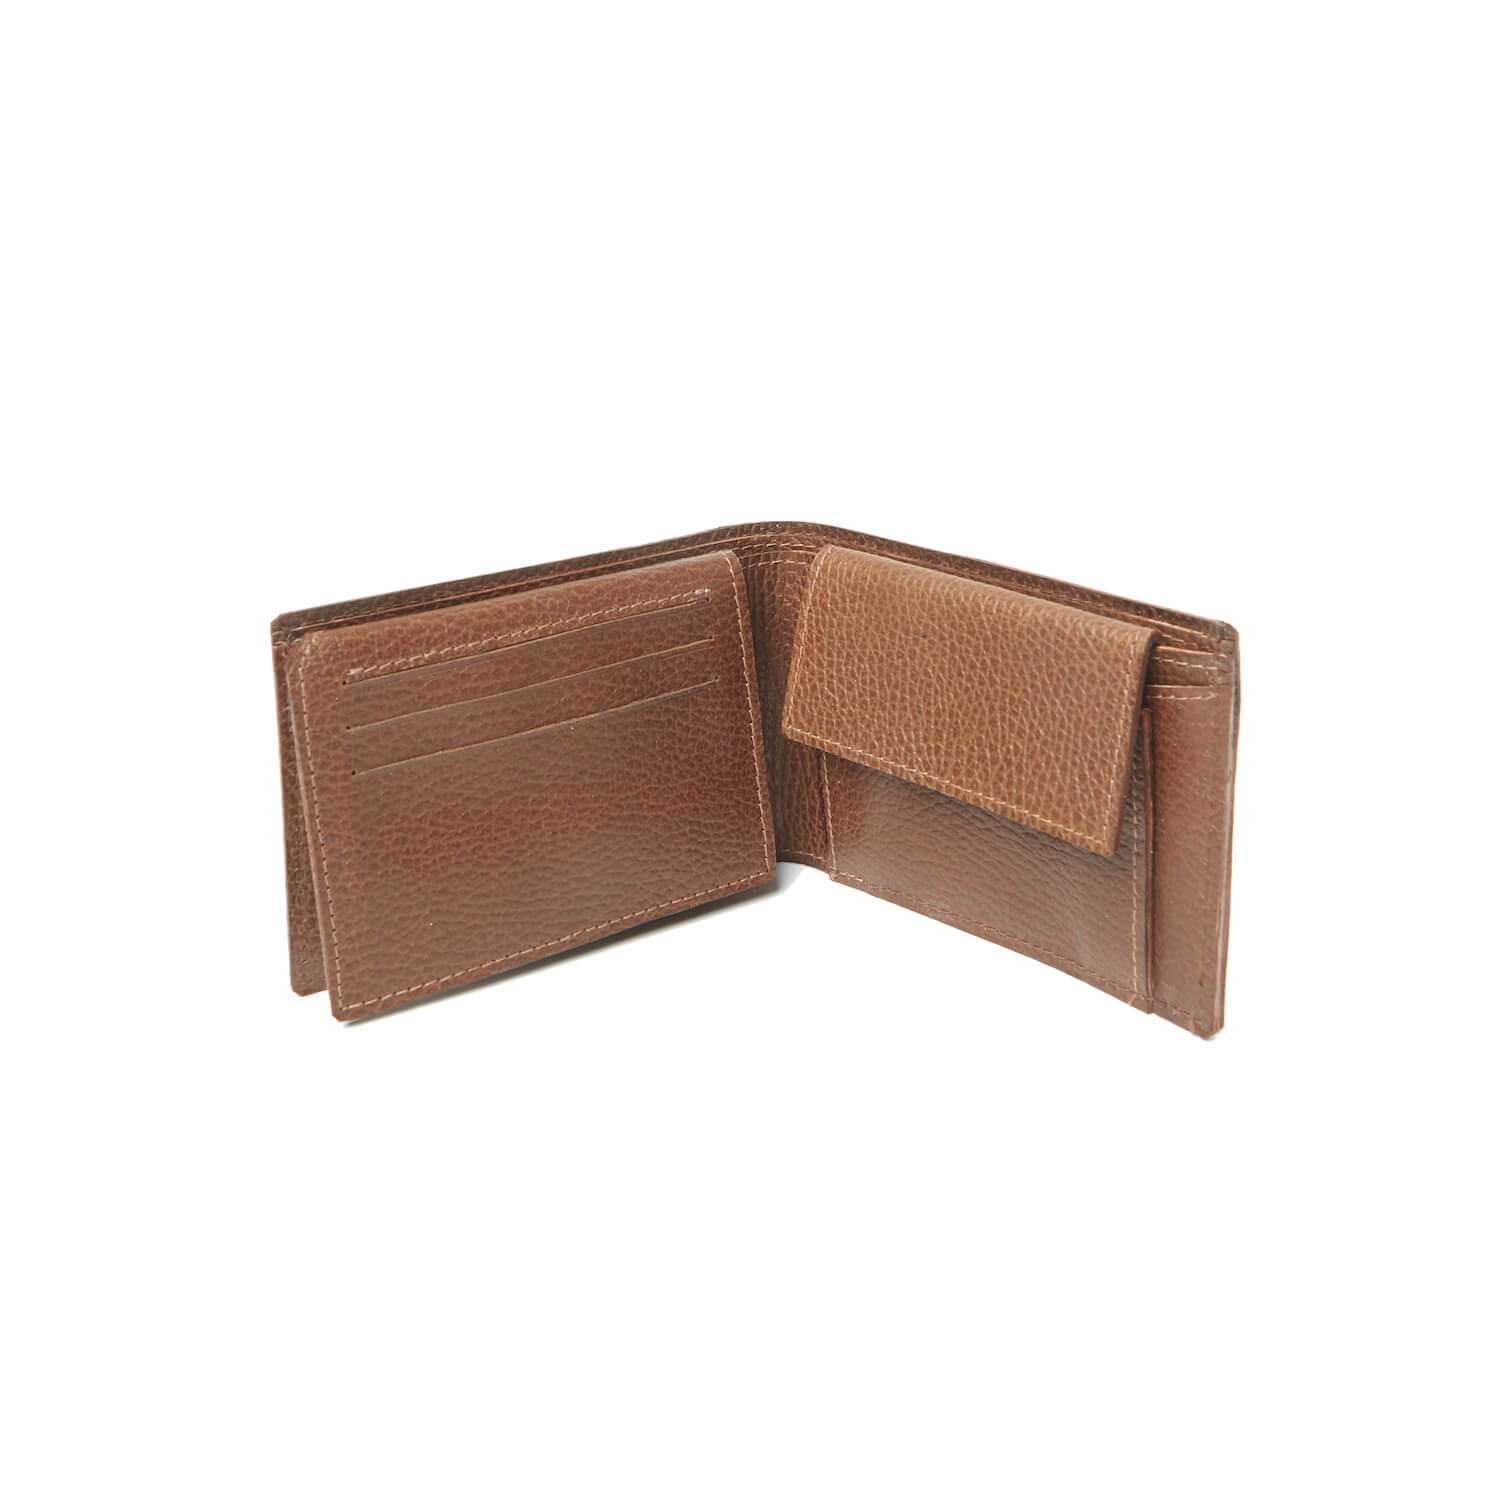 MYOMY - My Philip Bag Pocket Wallet - INGAR